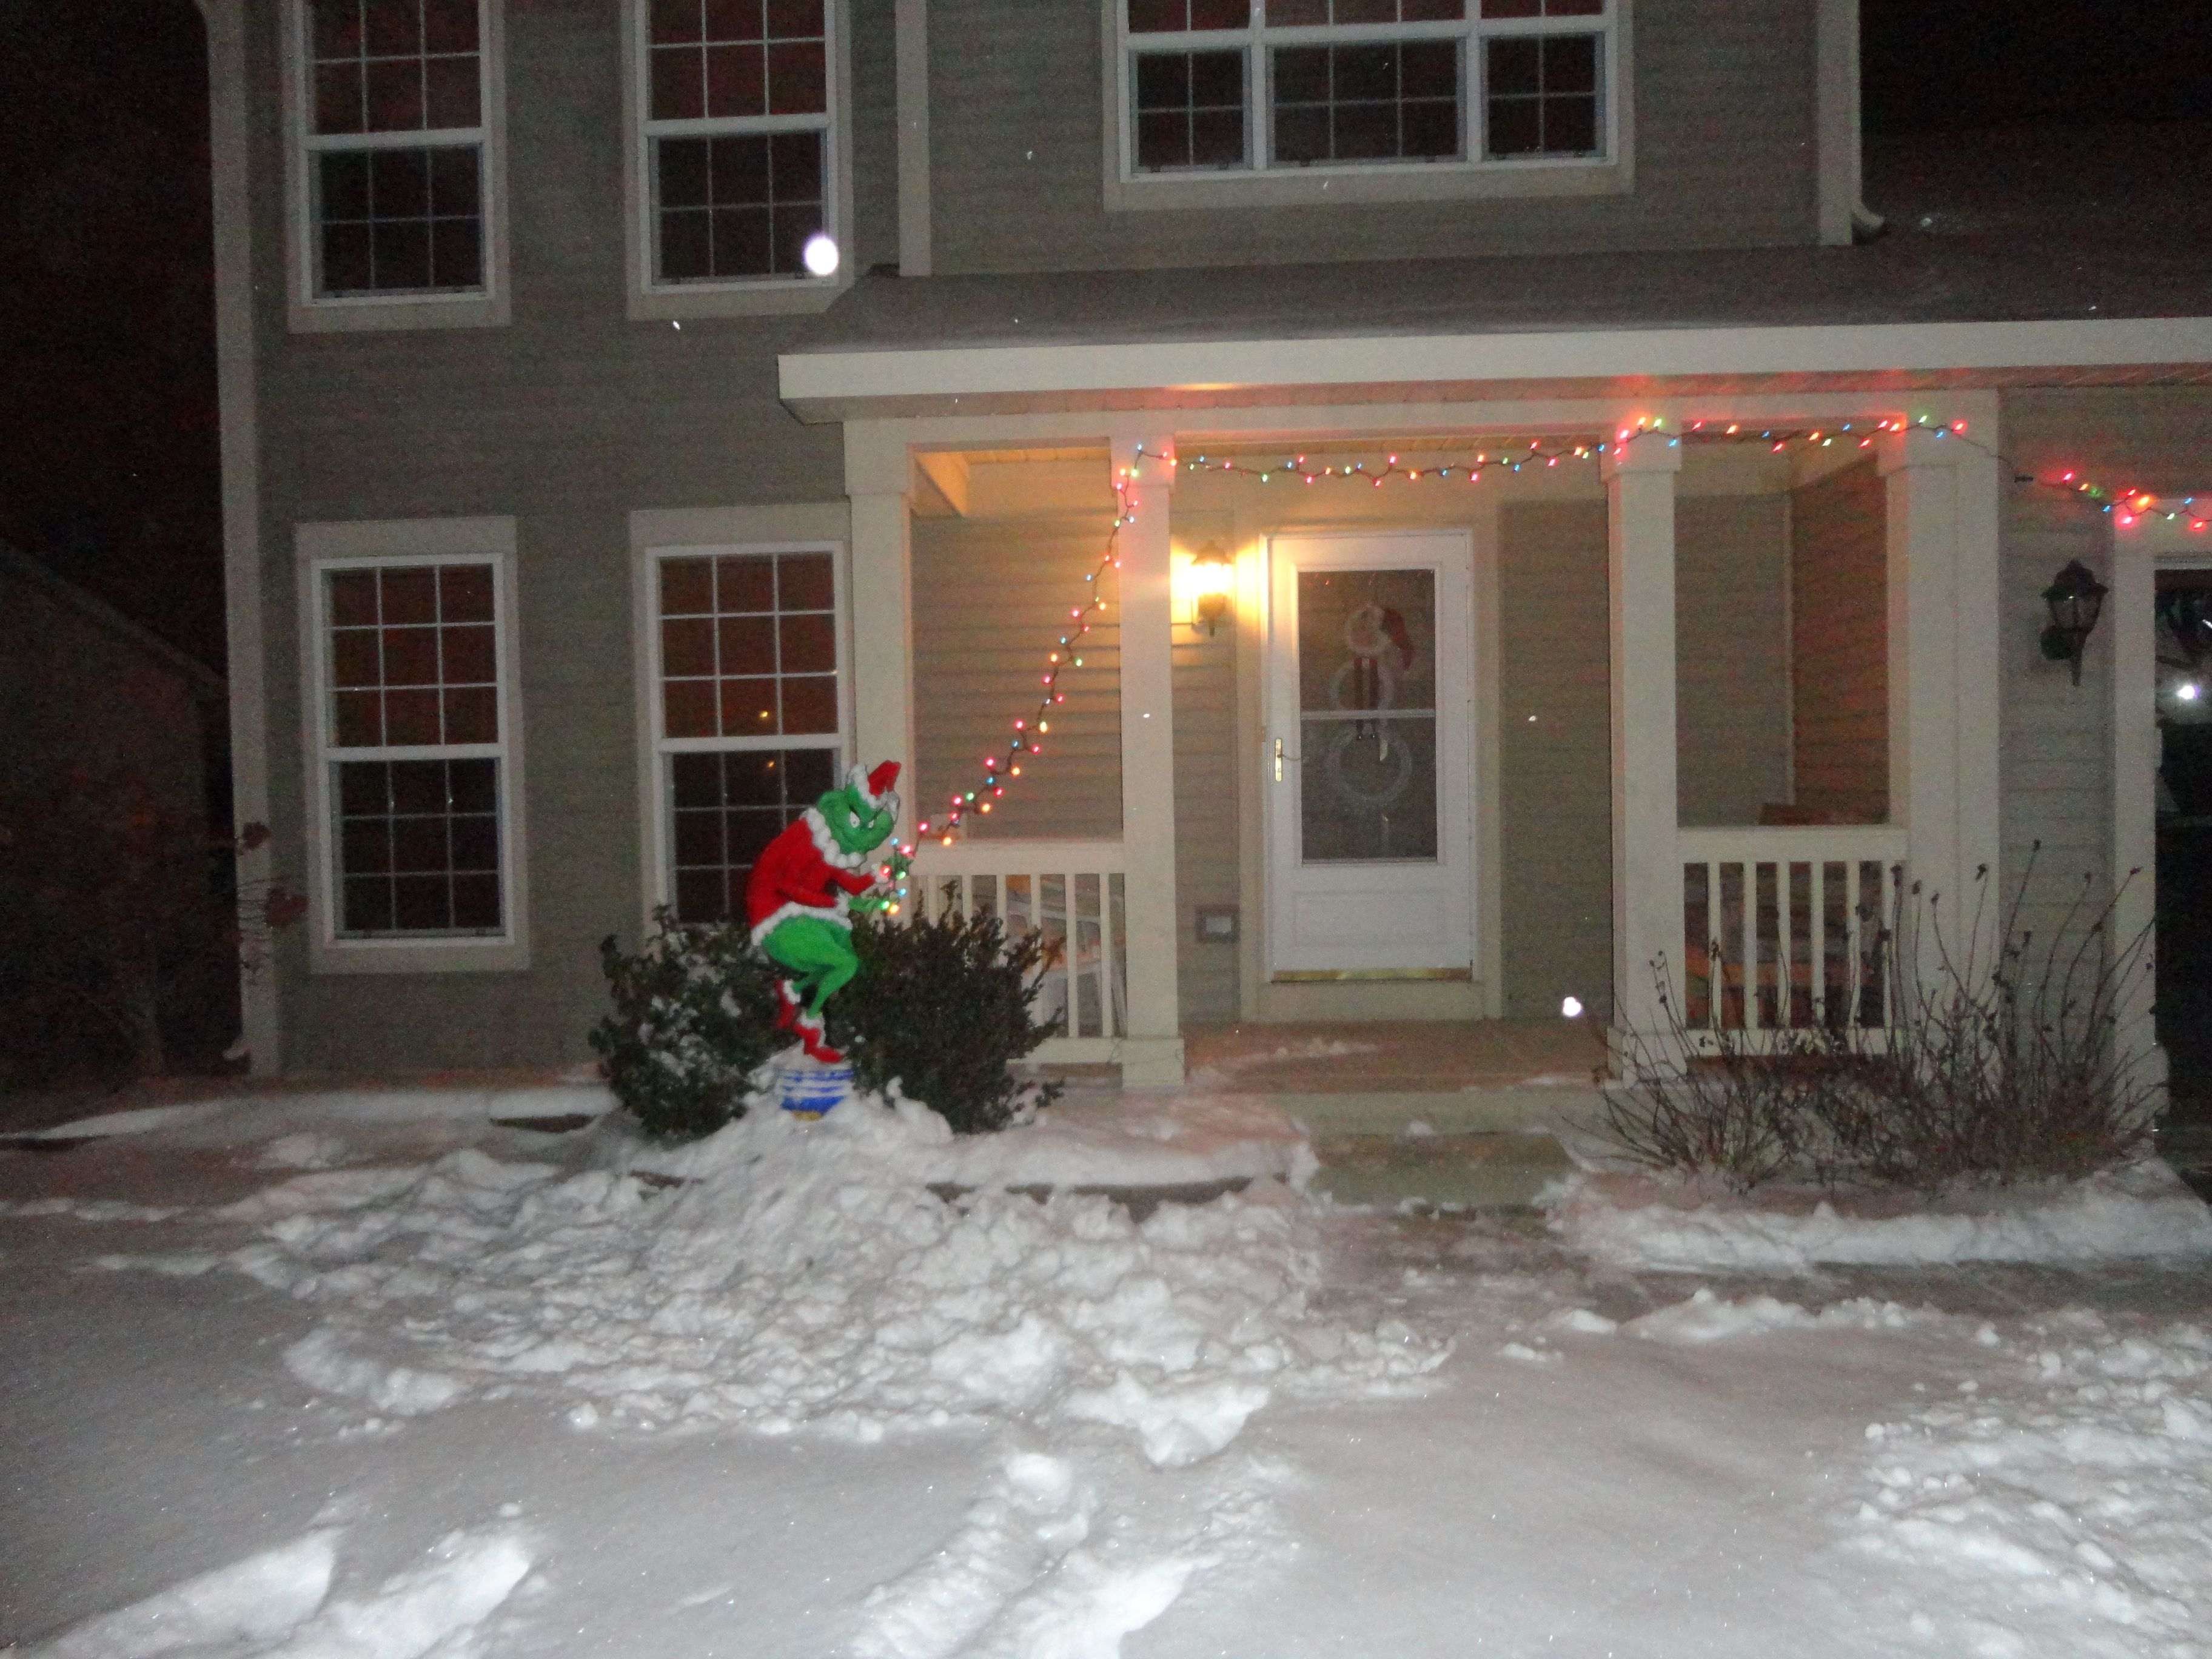 How the grinch stole christmas outside decor i want to do this to my house